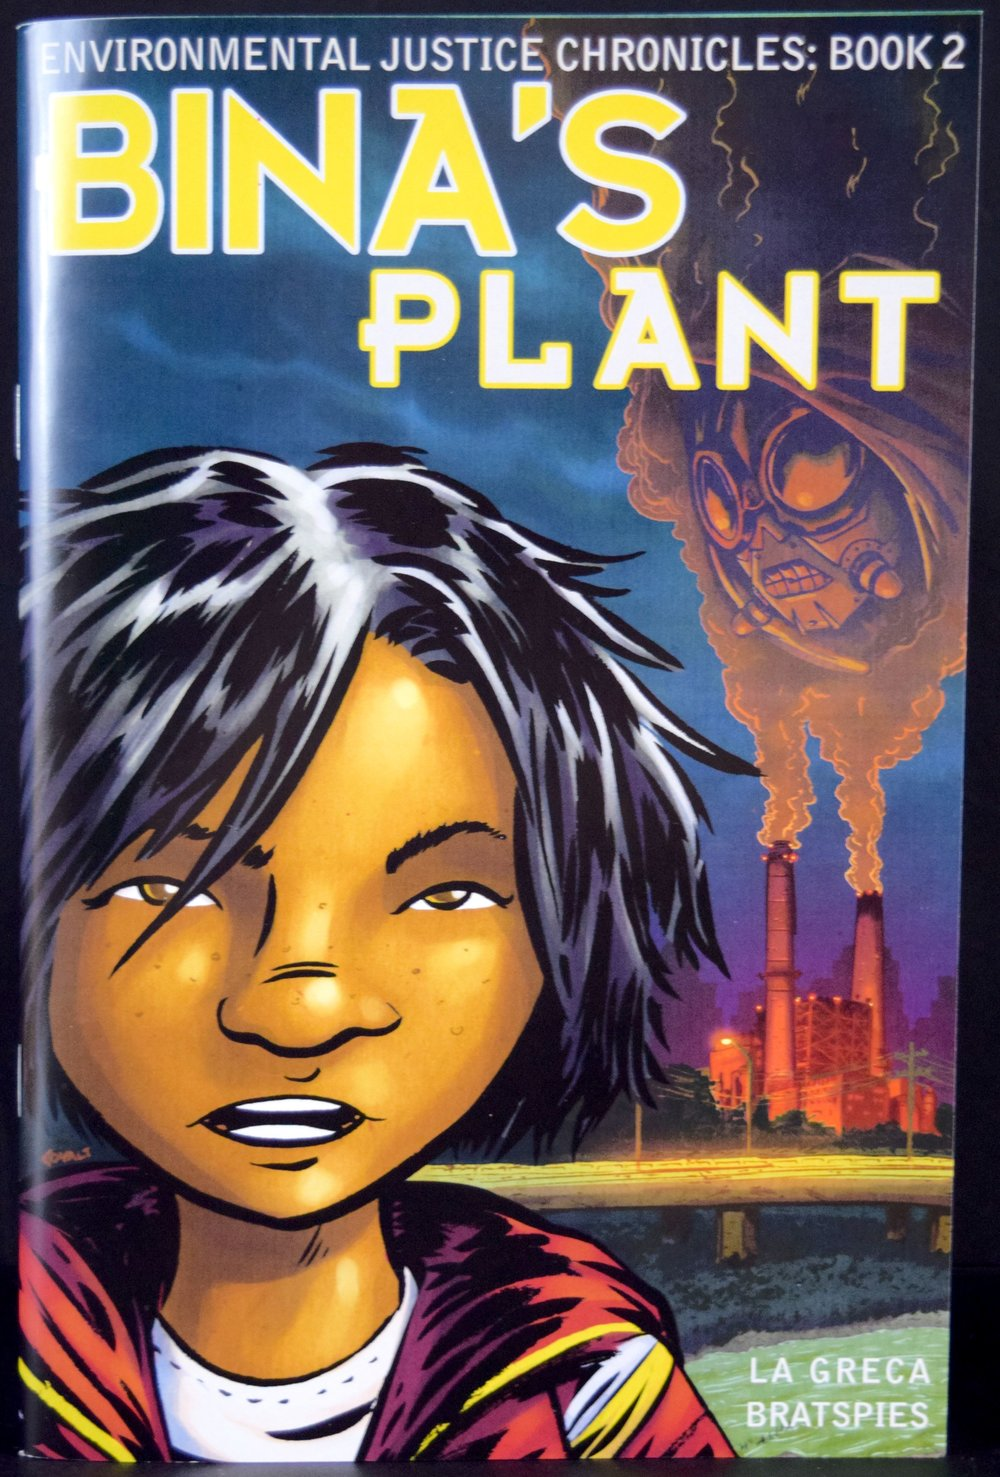 Environmental Justice Chronicles Book 2: Bina's Plant , written by  Charlie La Greca  &  Rebecca Bratspies  with art from  Charlie La Greca .